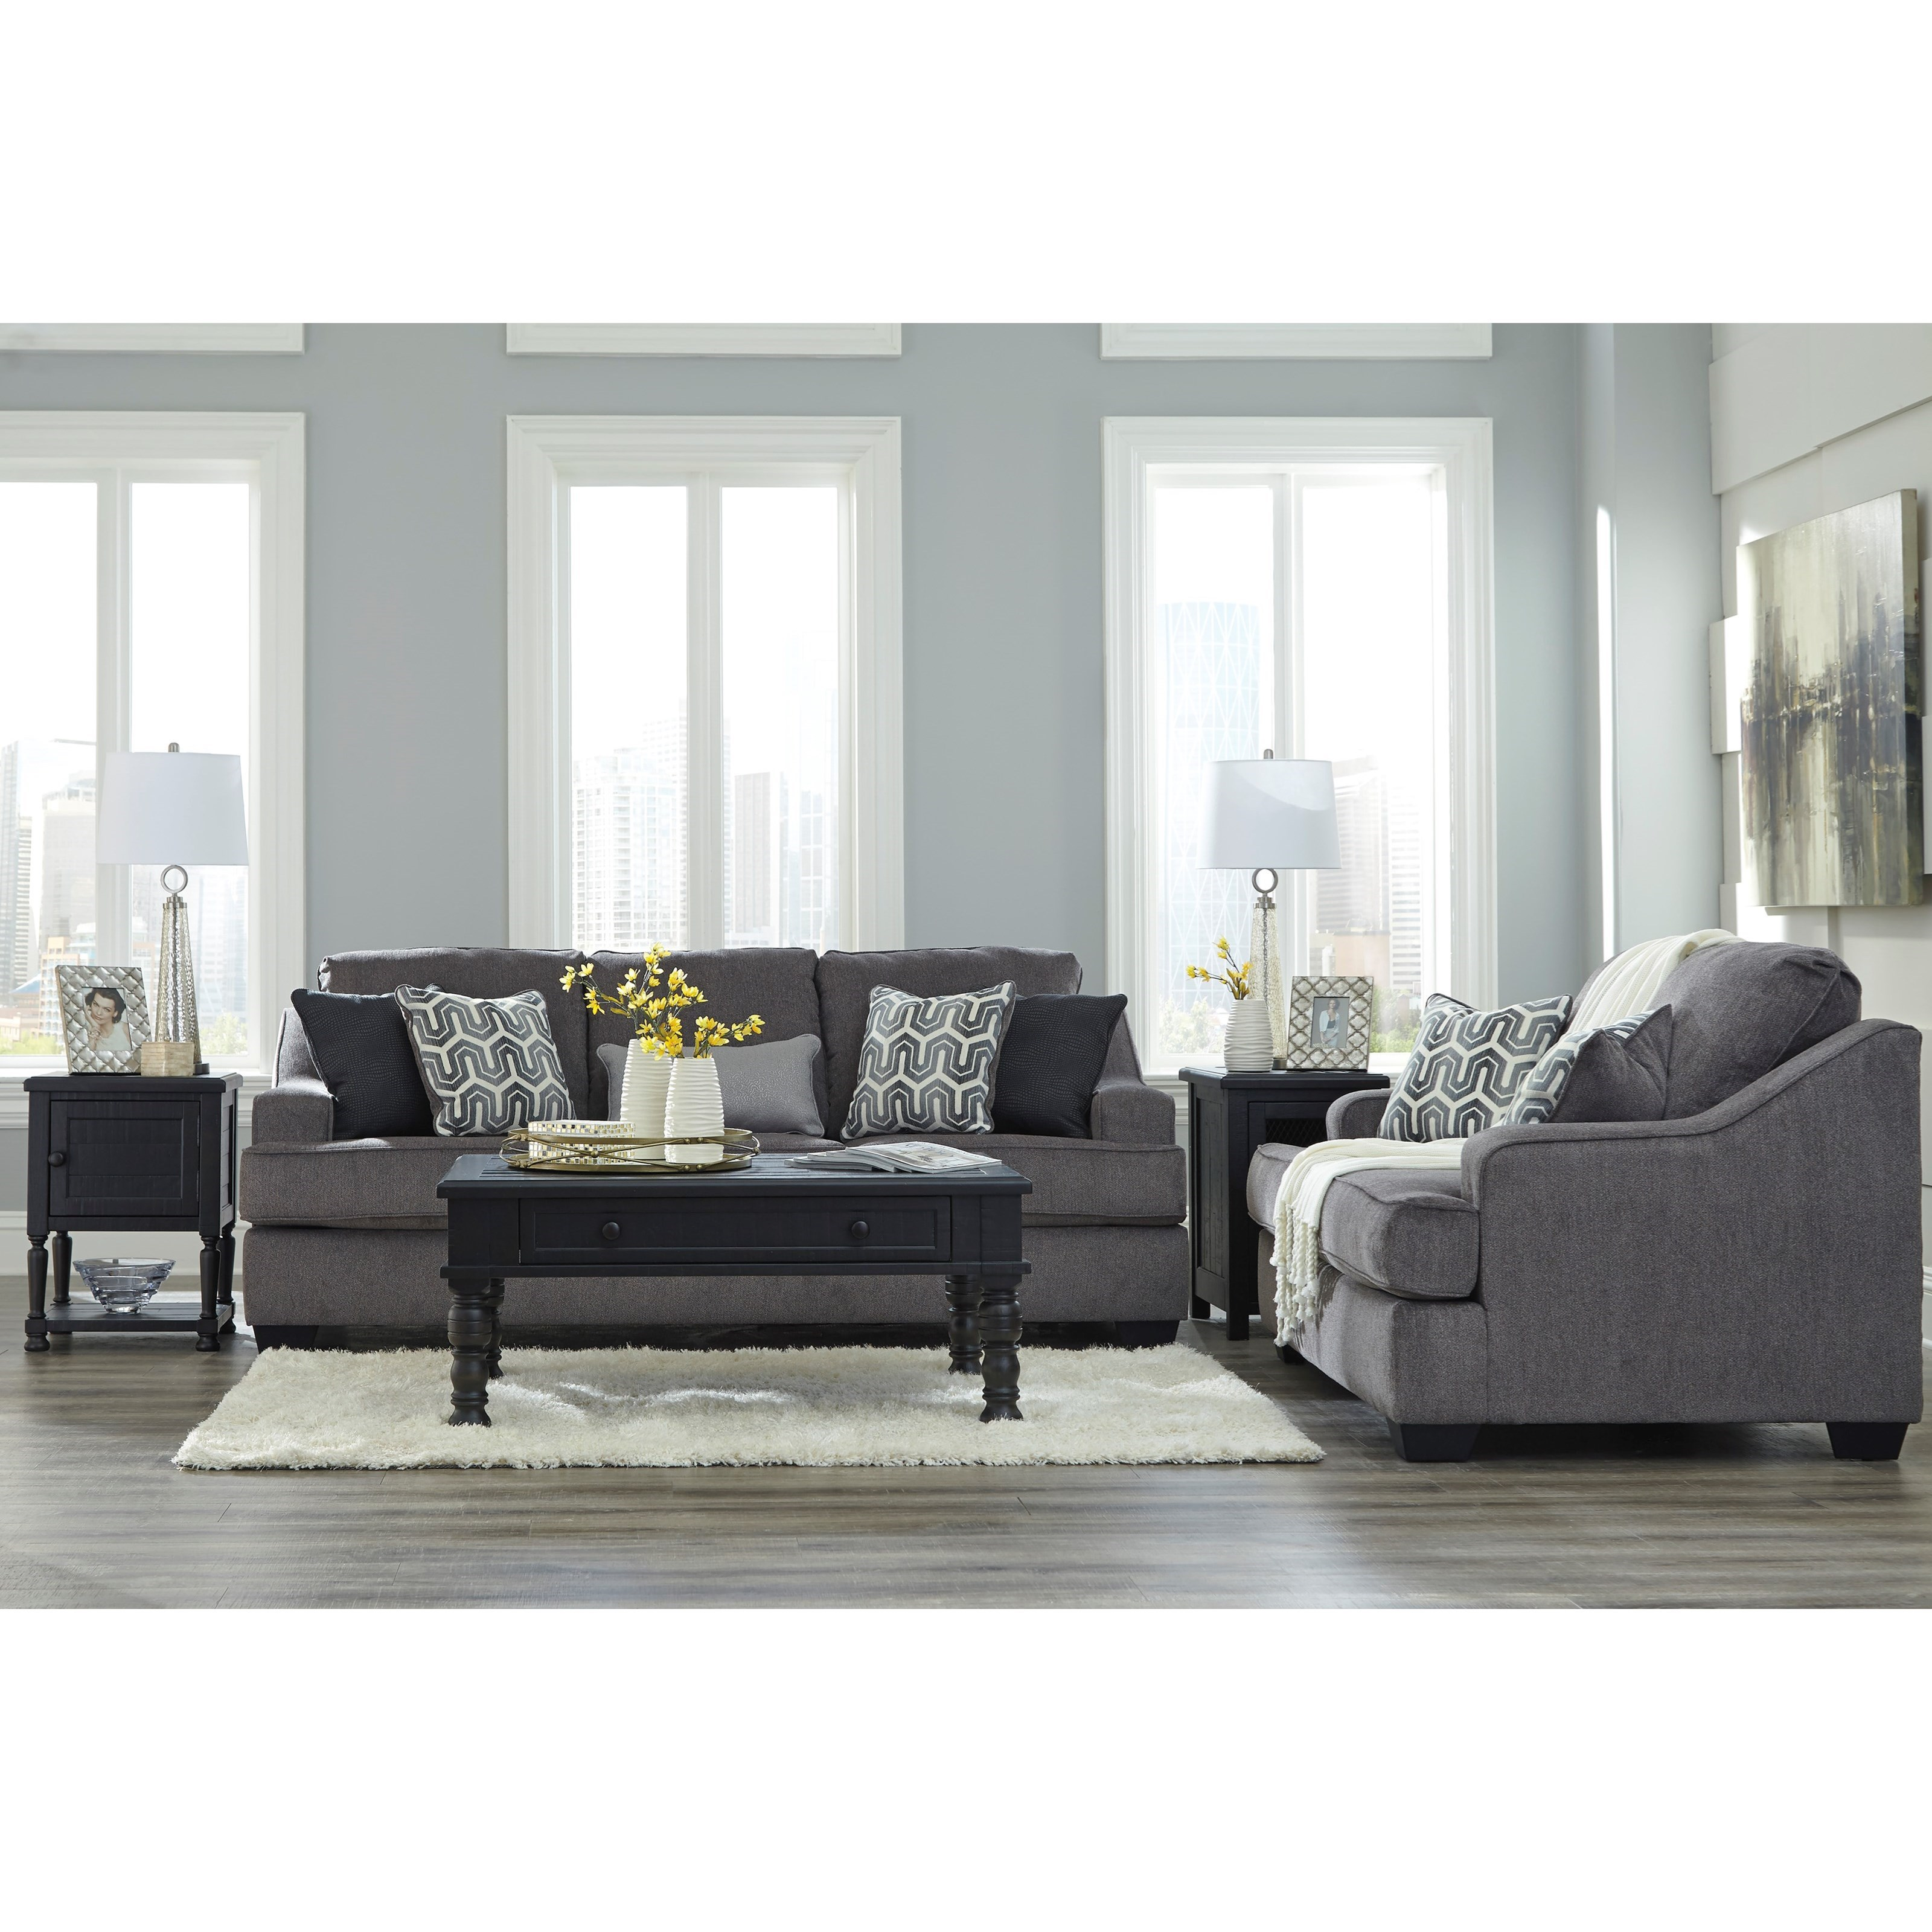 Ashley Sofas Prices: Signature Design By Ashley Gilmer 6560338 Contemporary